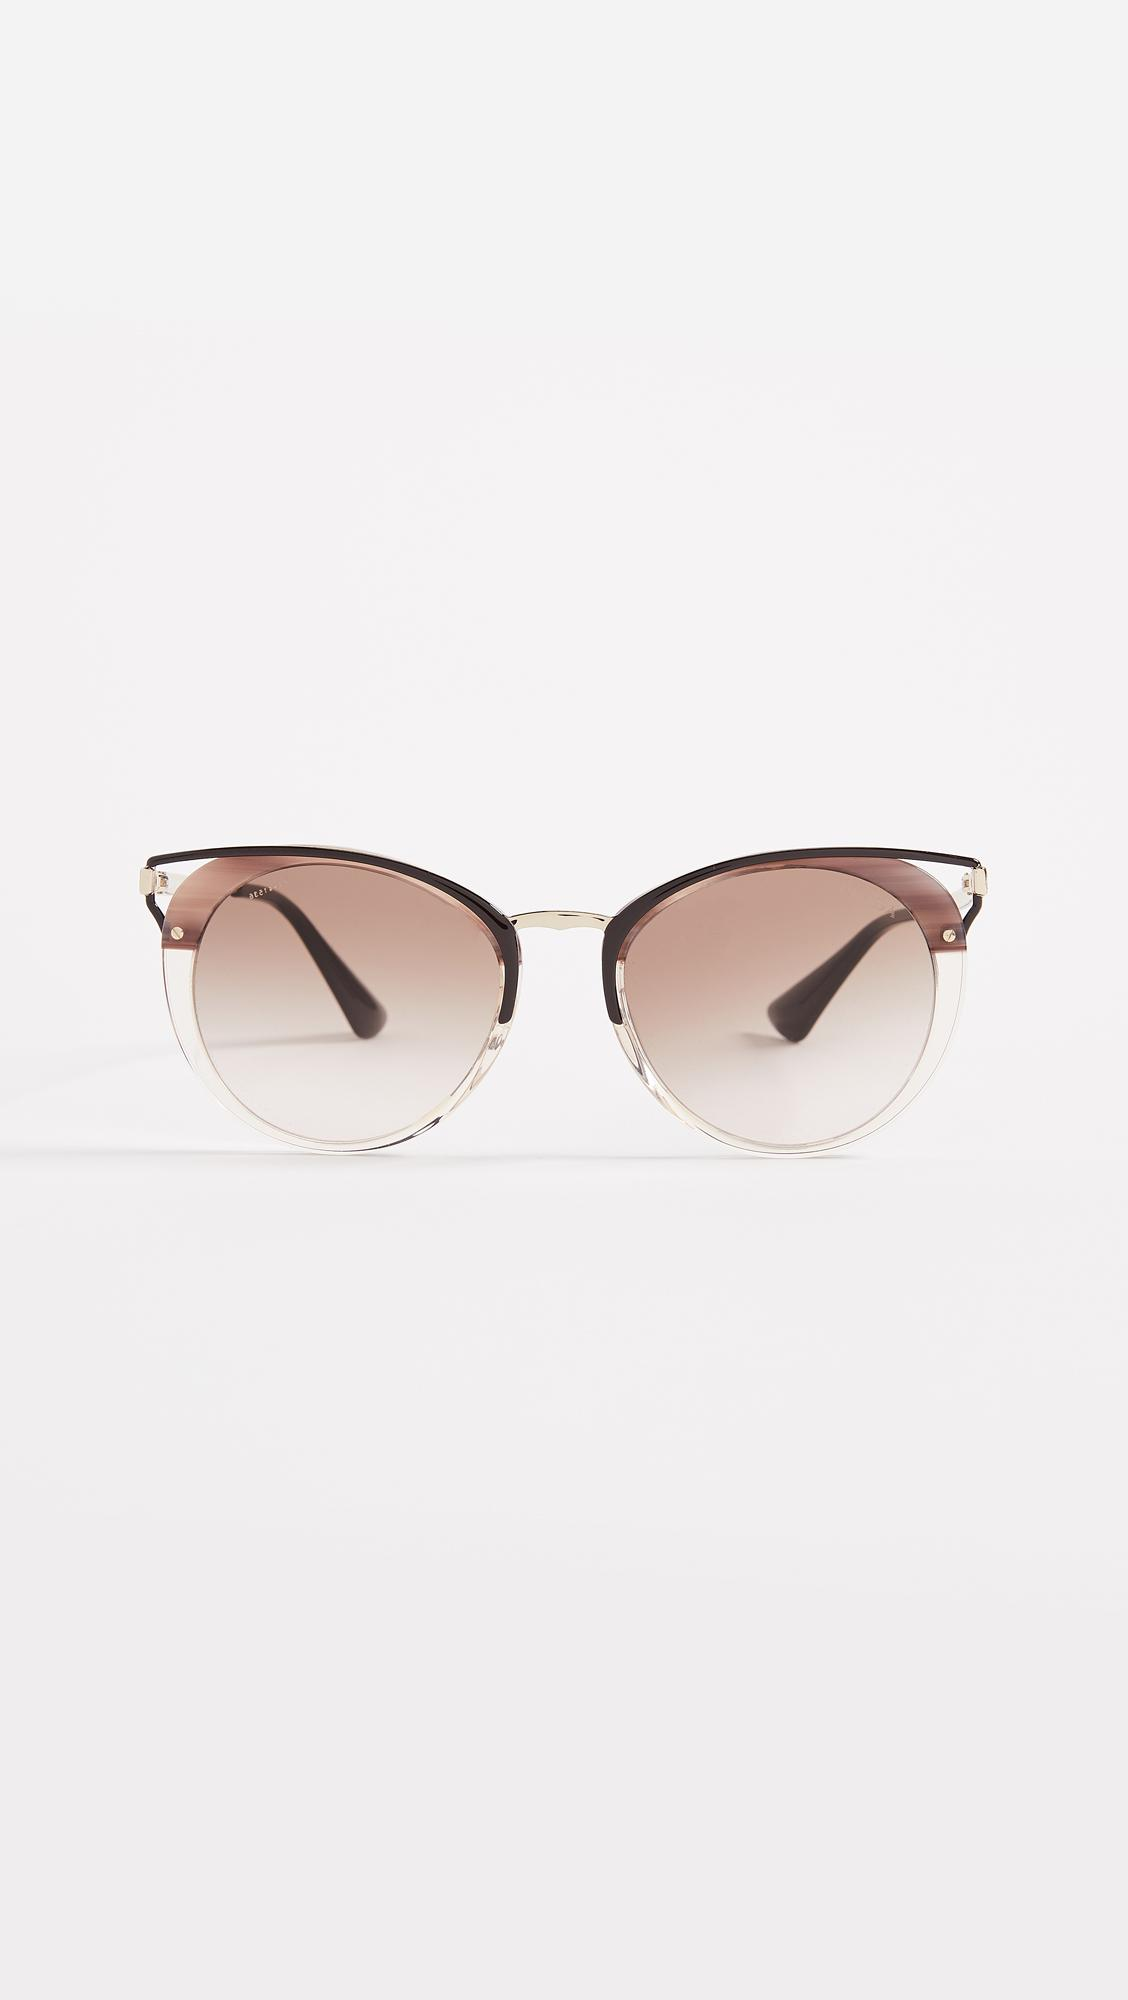 a0bdd60b18ad Gallery. Previously sold at  Shopbop · Women s Round Sunglasses ...